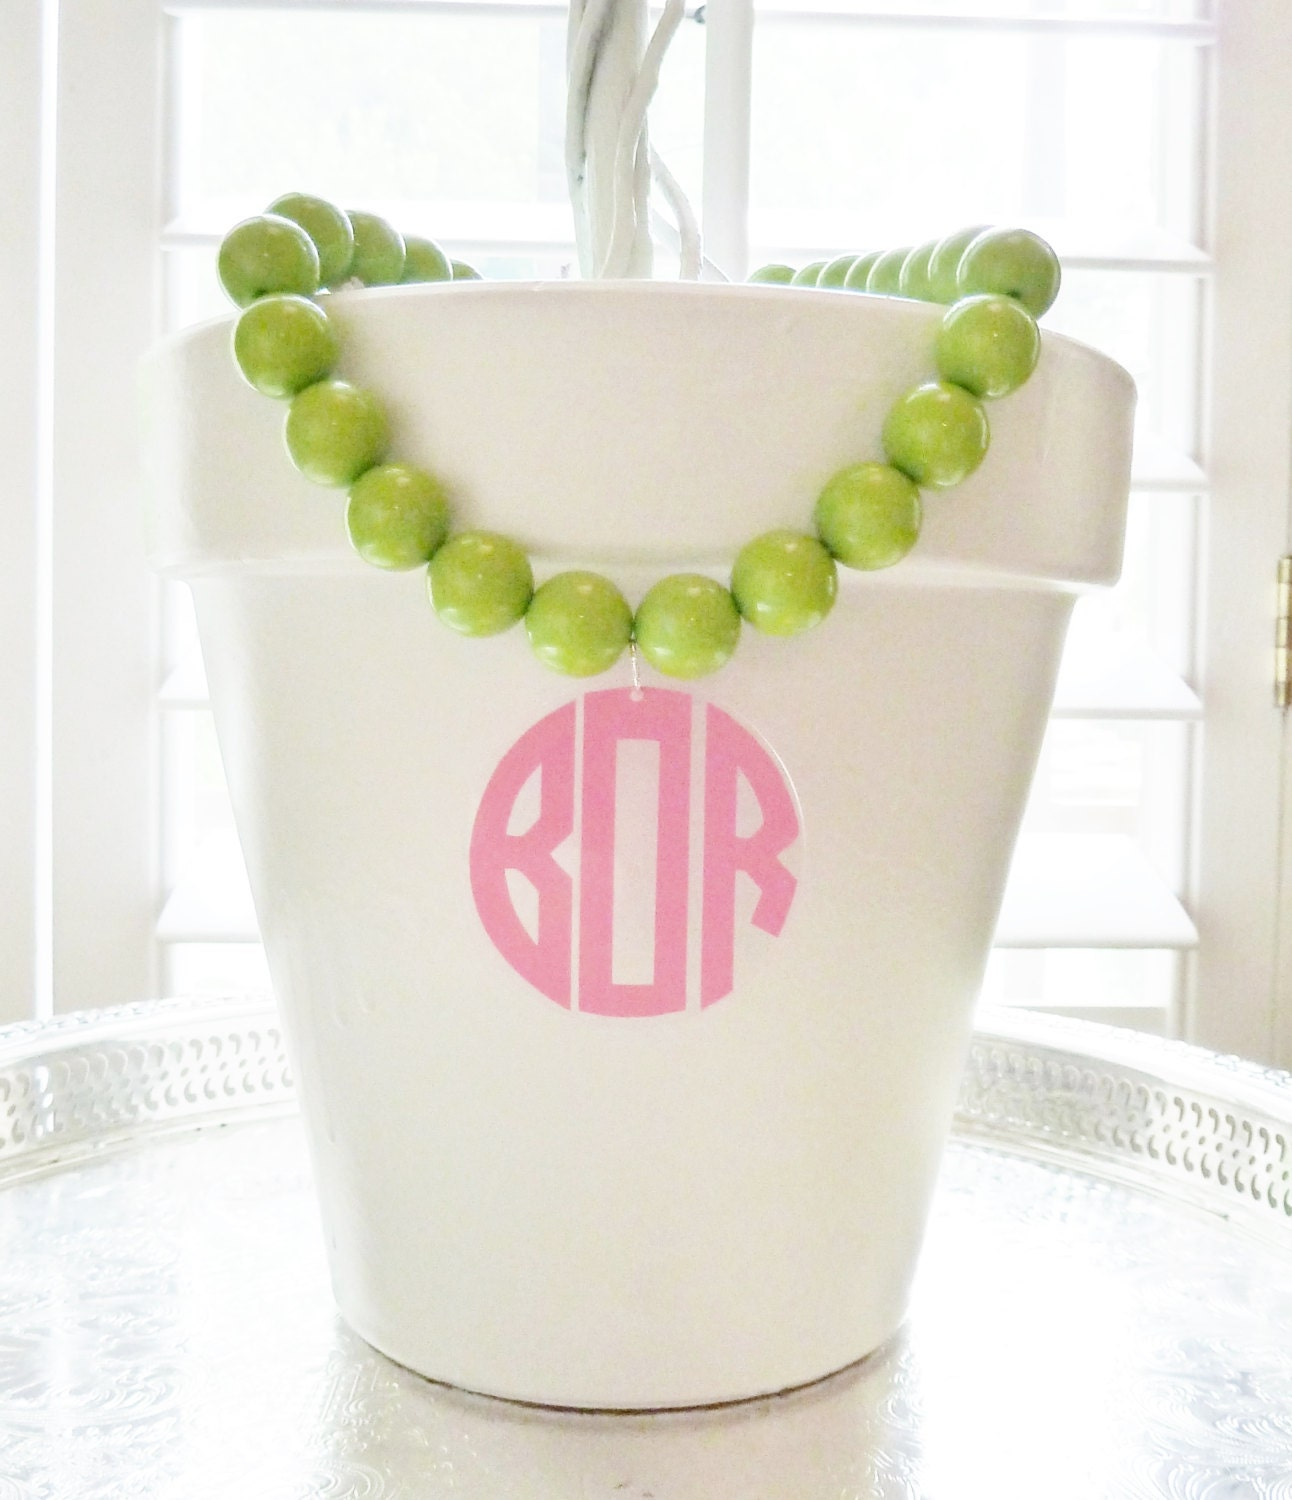 Monogram Necklace: Oversized Beads with Acrylic Pendant